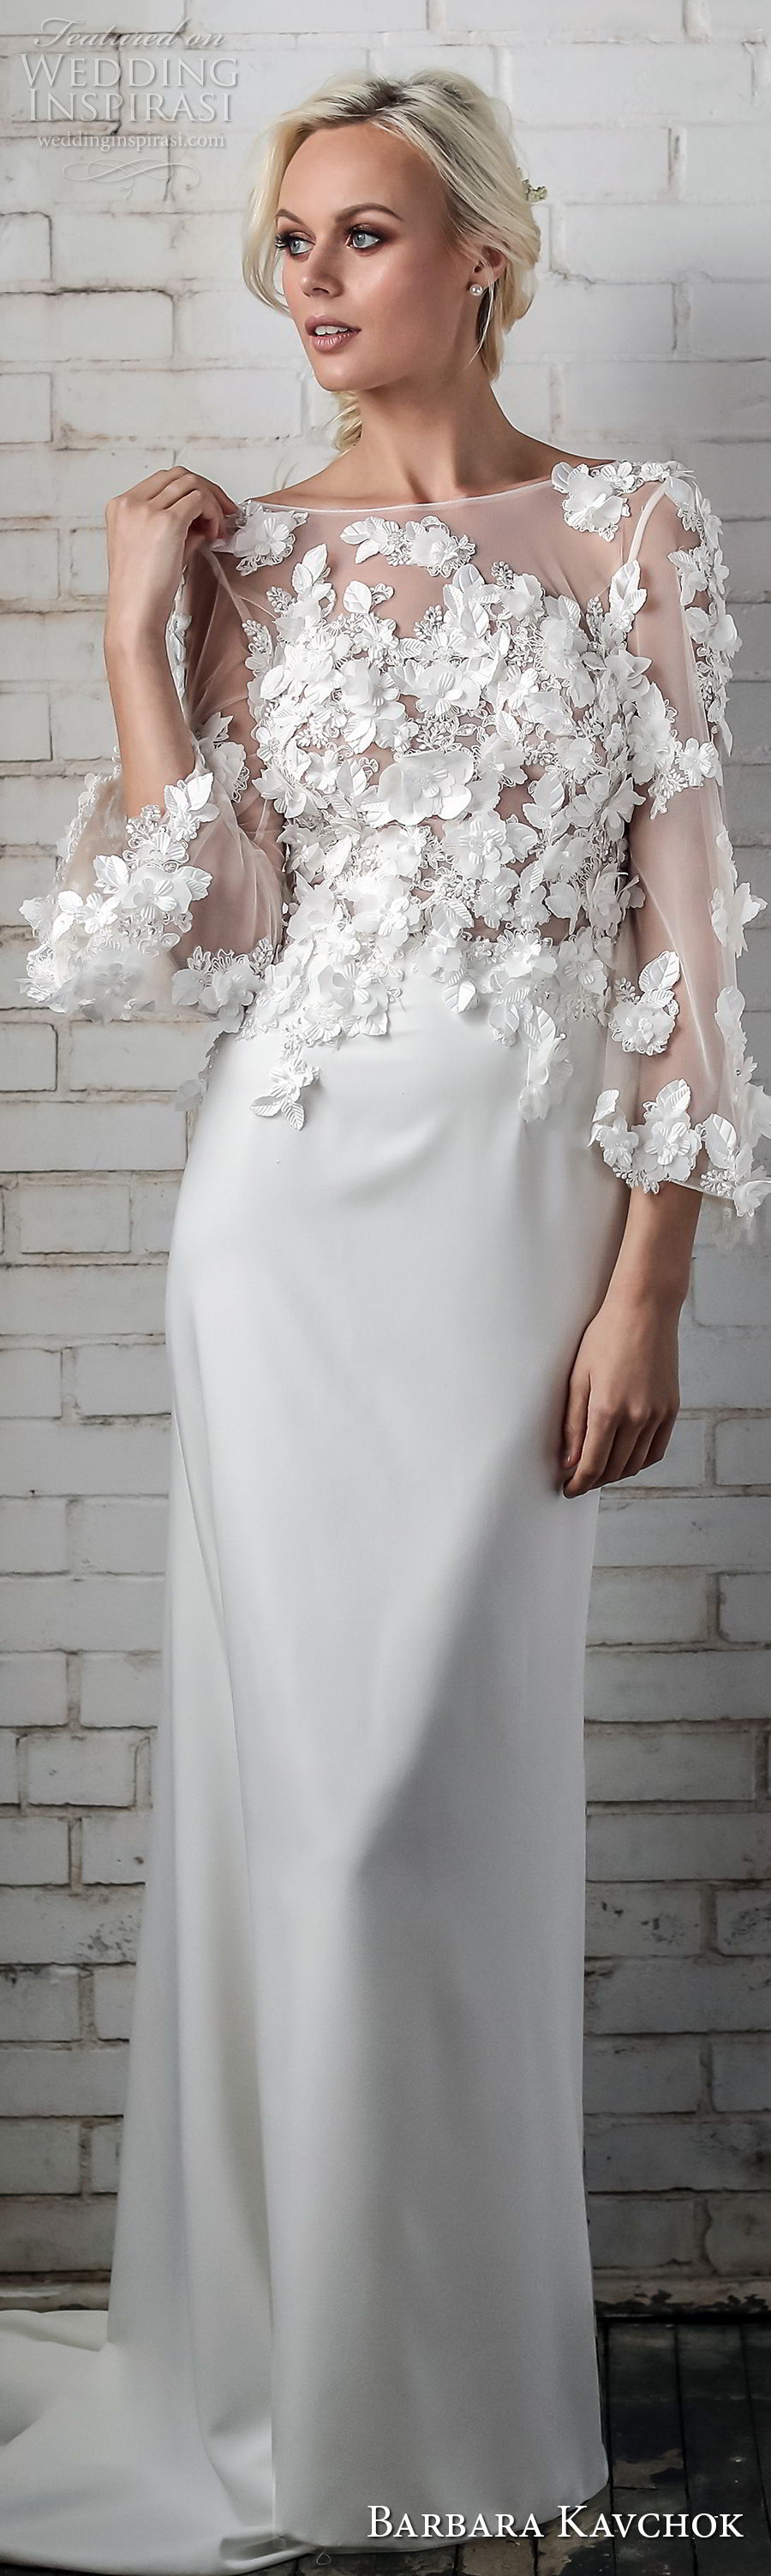 barbara kavchok spring 2018 bridal three quarter sleeves bateau neck heavily embellished bodice elegant sheath wedding dress mid scoop back sweep train (meesha) lv